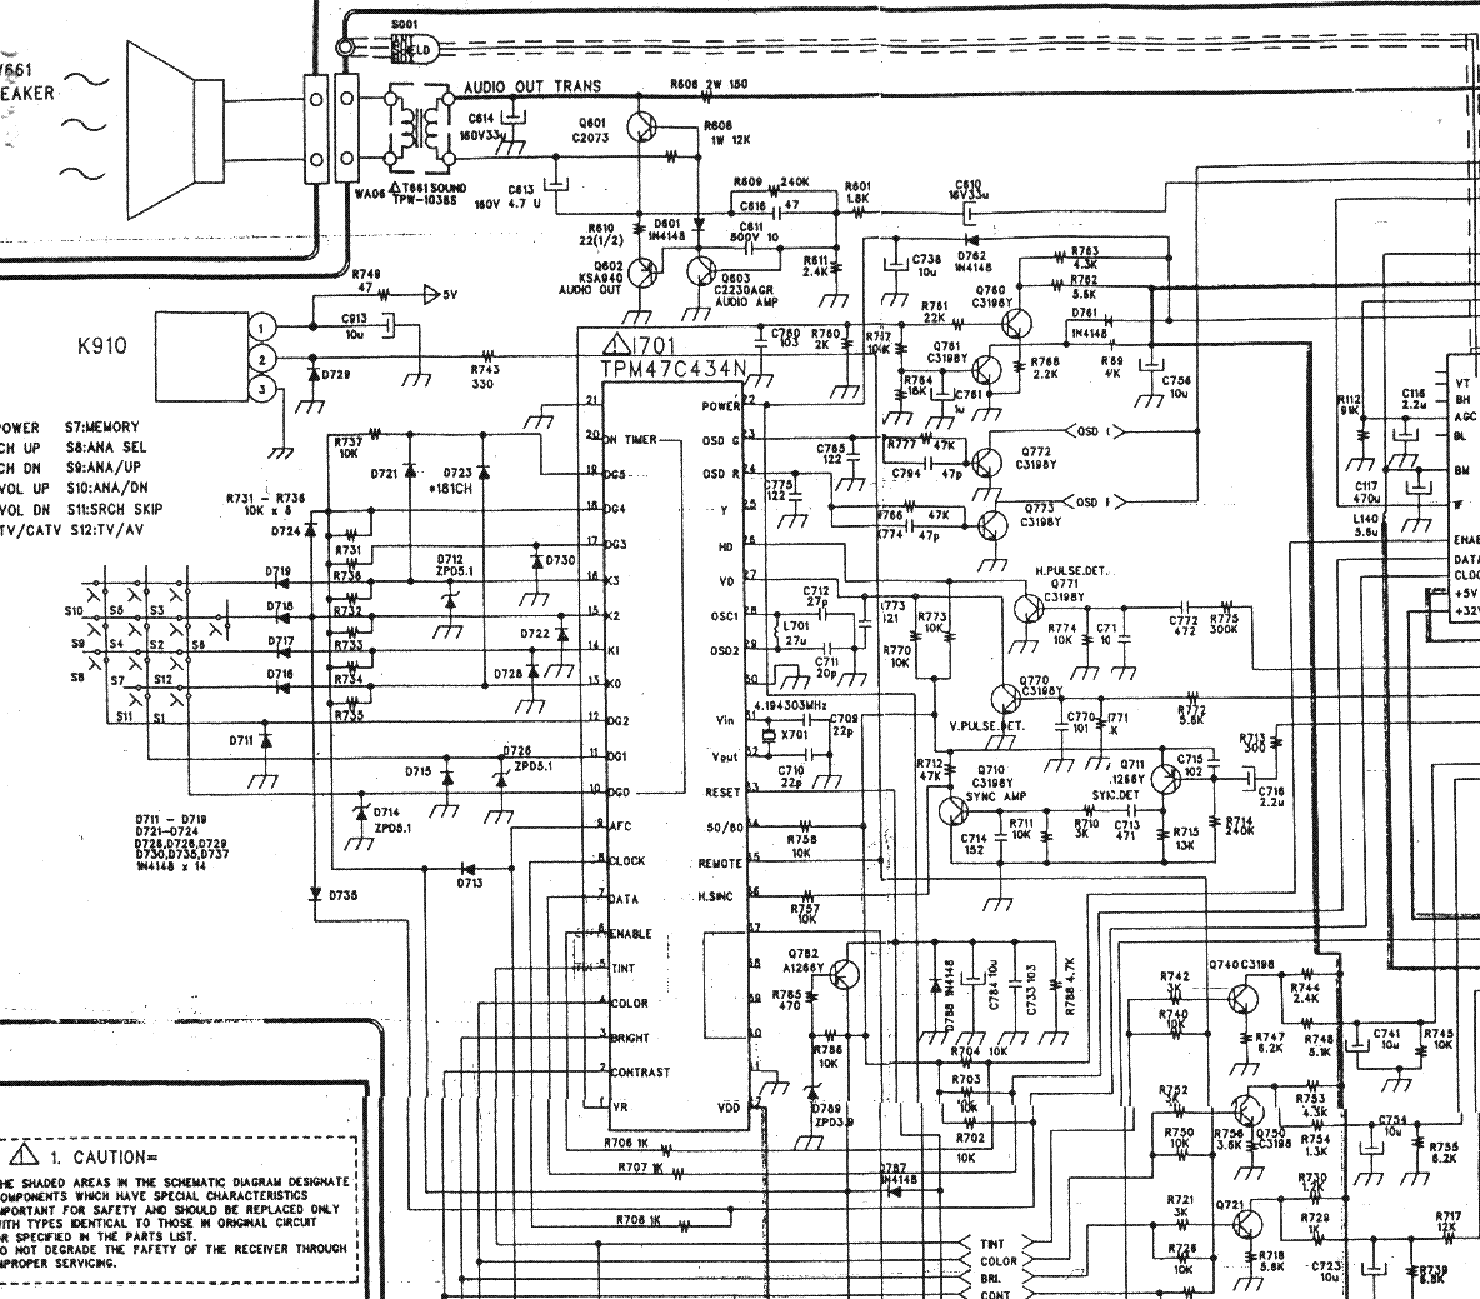 DAEWOO CN52N Service Manual download, schematics, eeprom, repair info for electronics experts